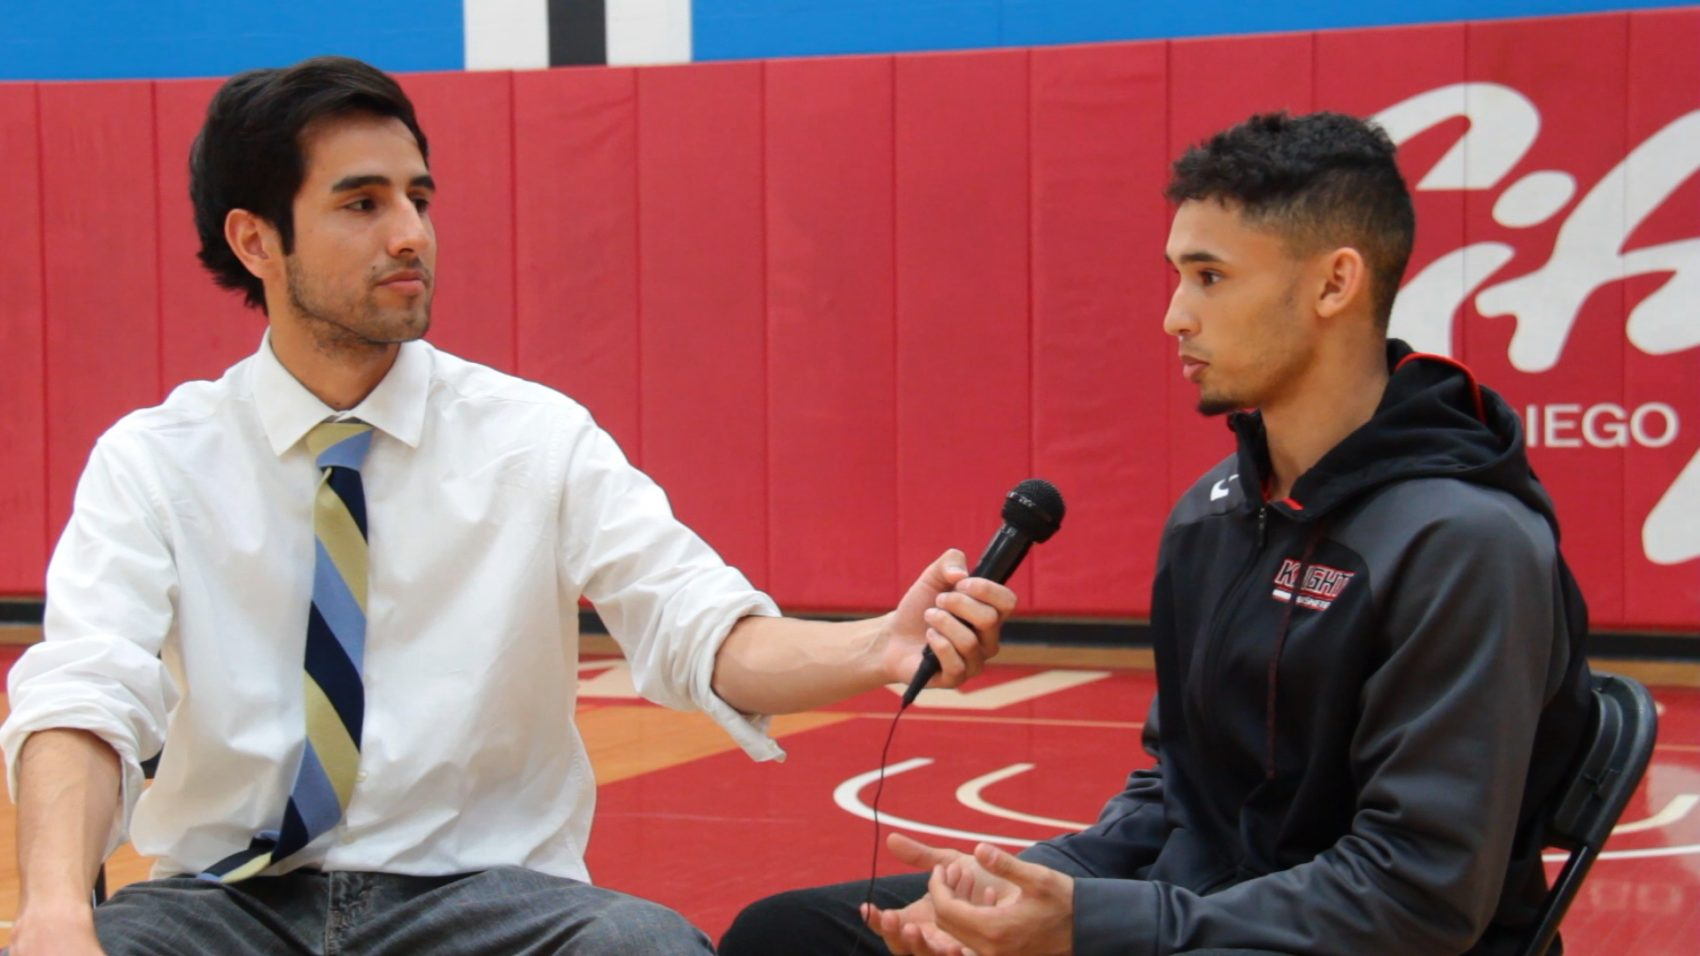 David Pradel interviewing one of the members of the City College basketball team. (Courtesy David Pradel)